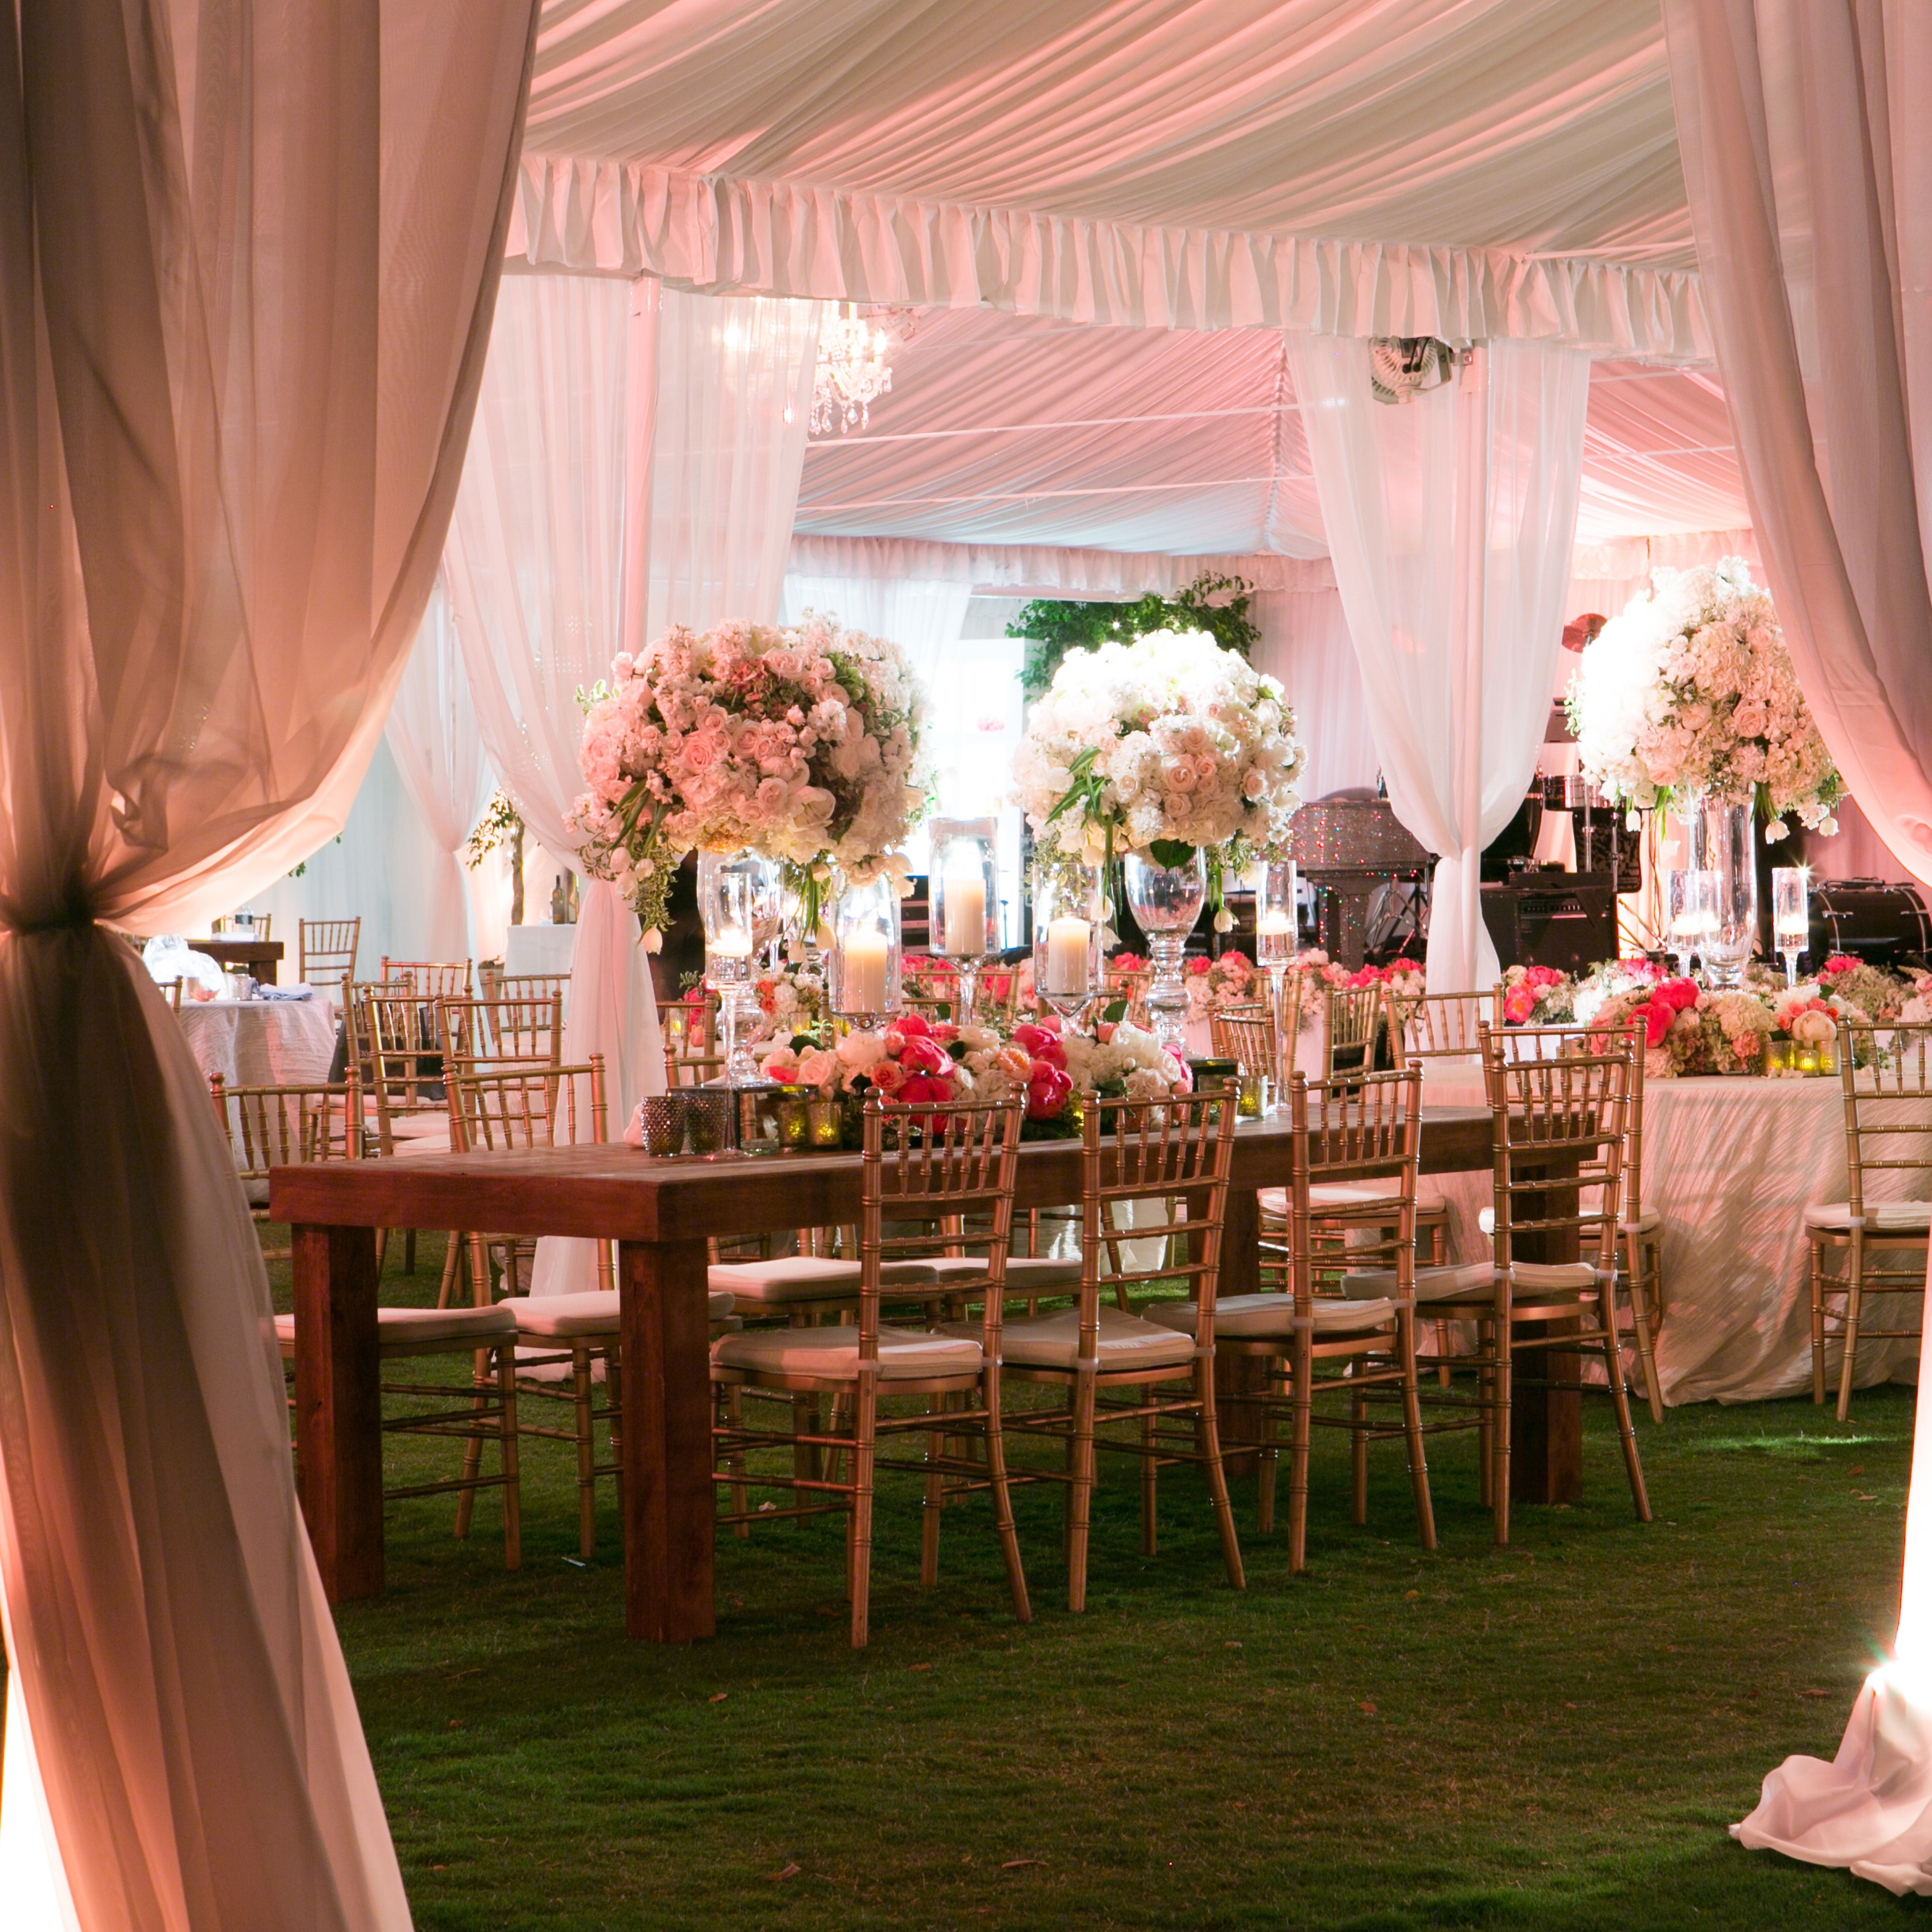 Tent at end of reception | Weddings - Tented | Pinterest | Event ...